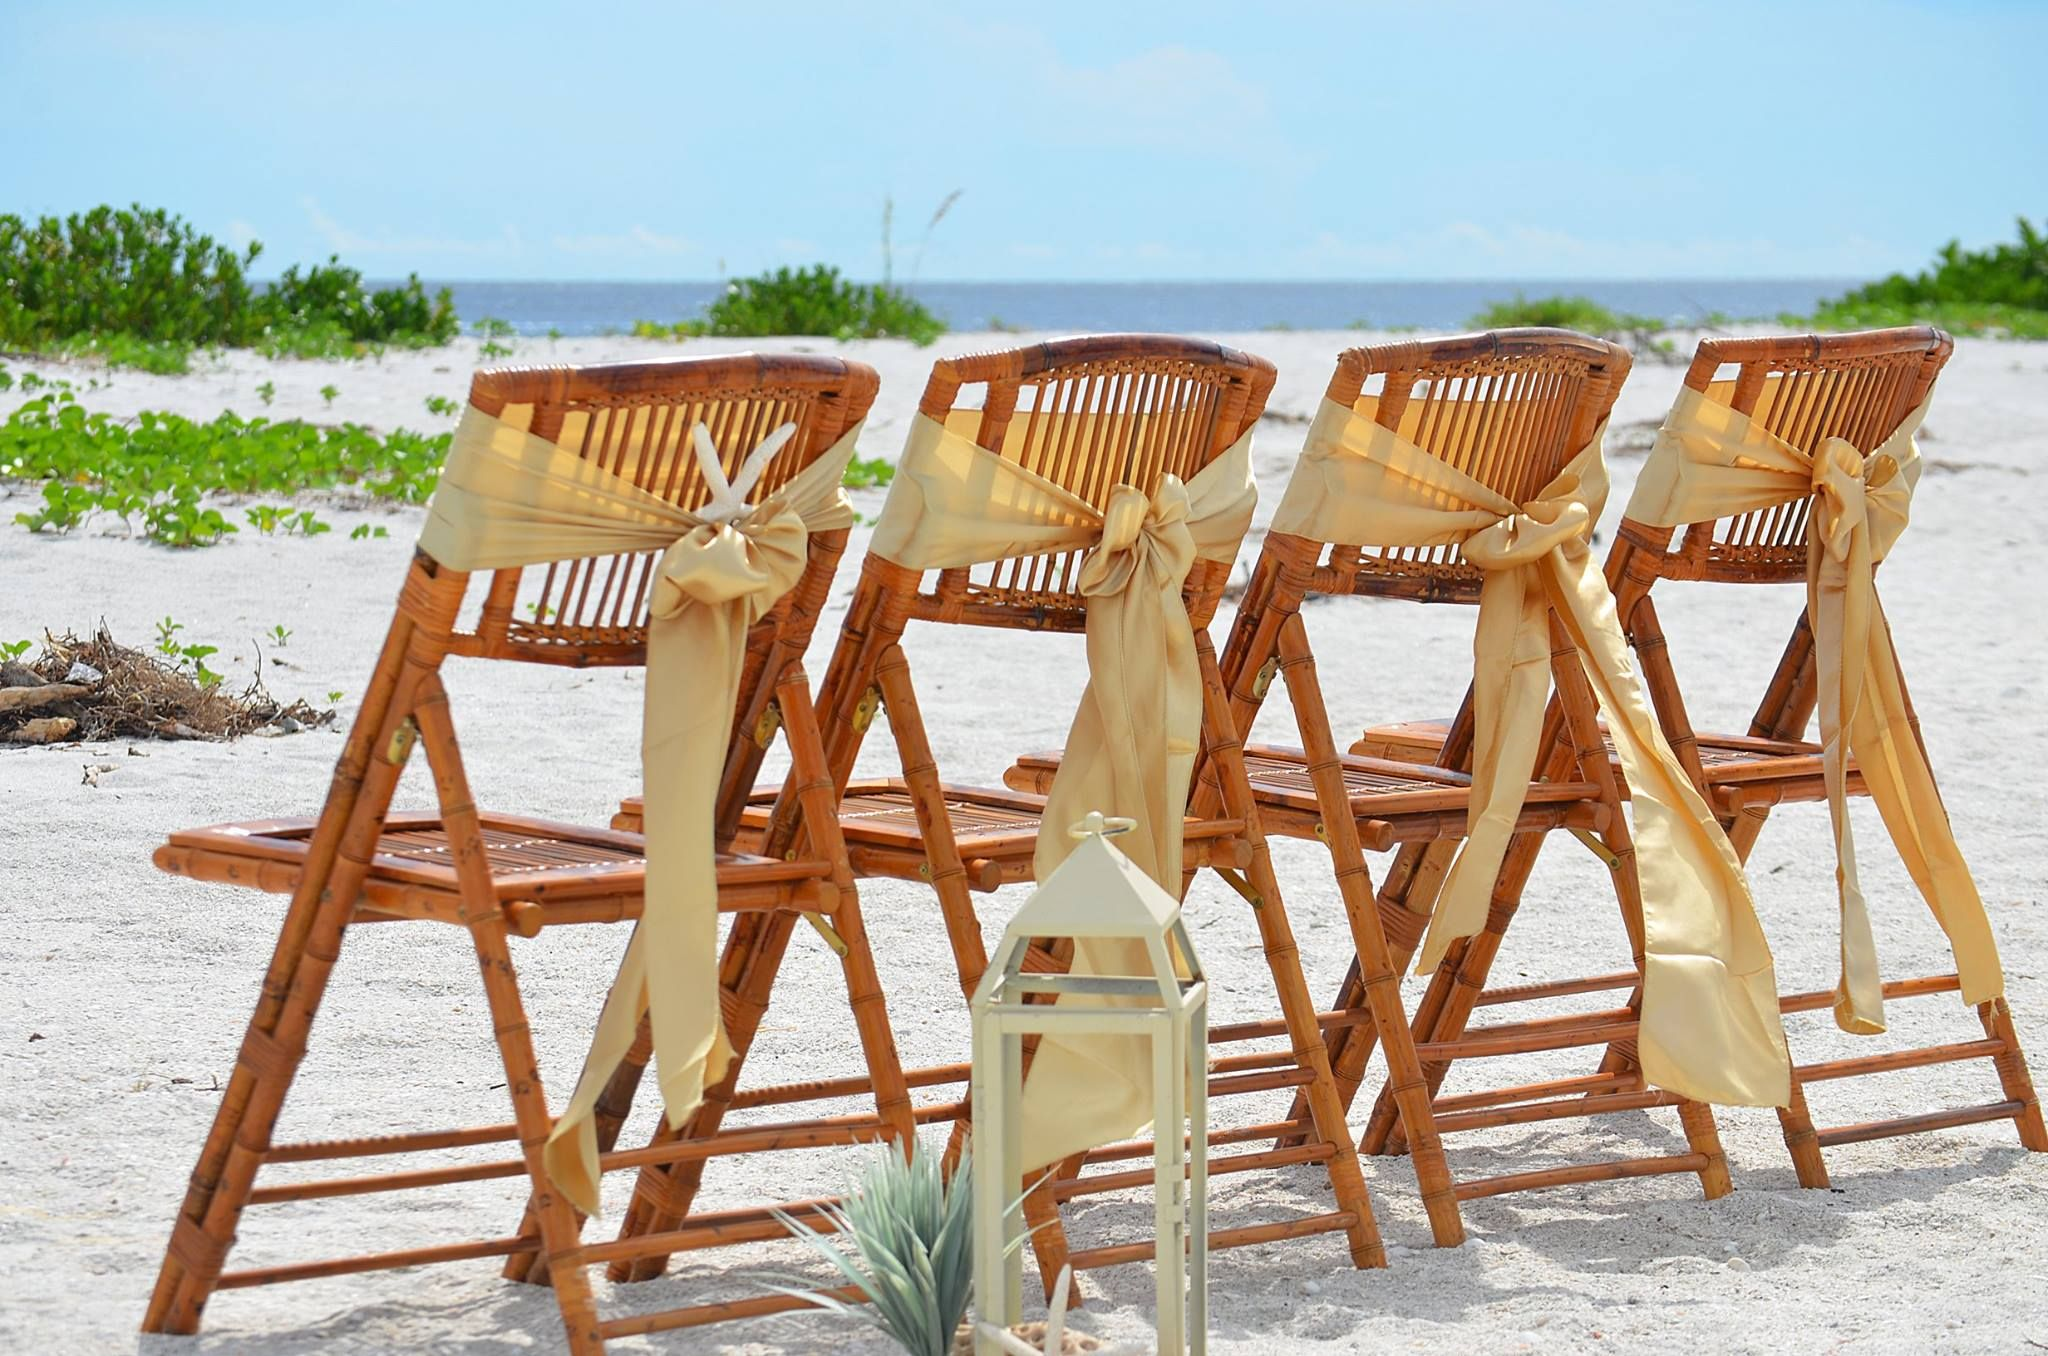 Bamboo wedding chairs starfish accents gold chair sashes glass